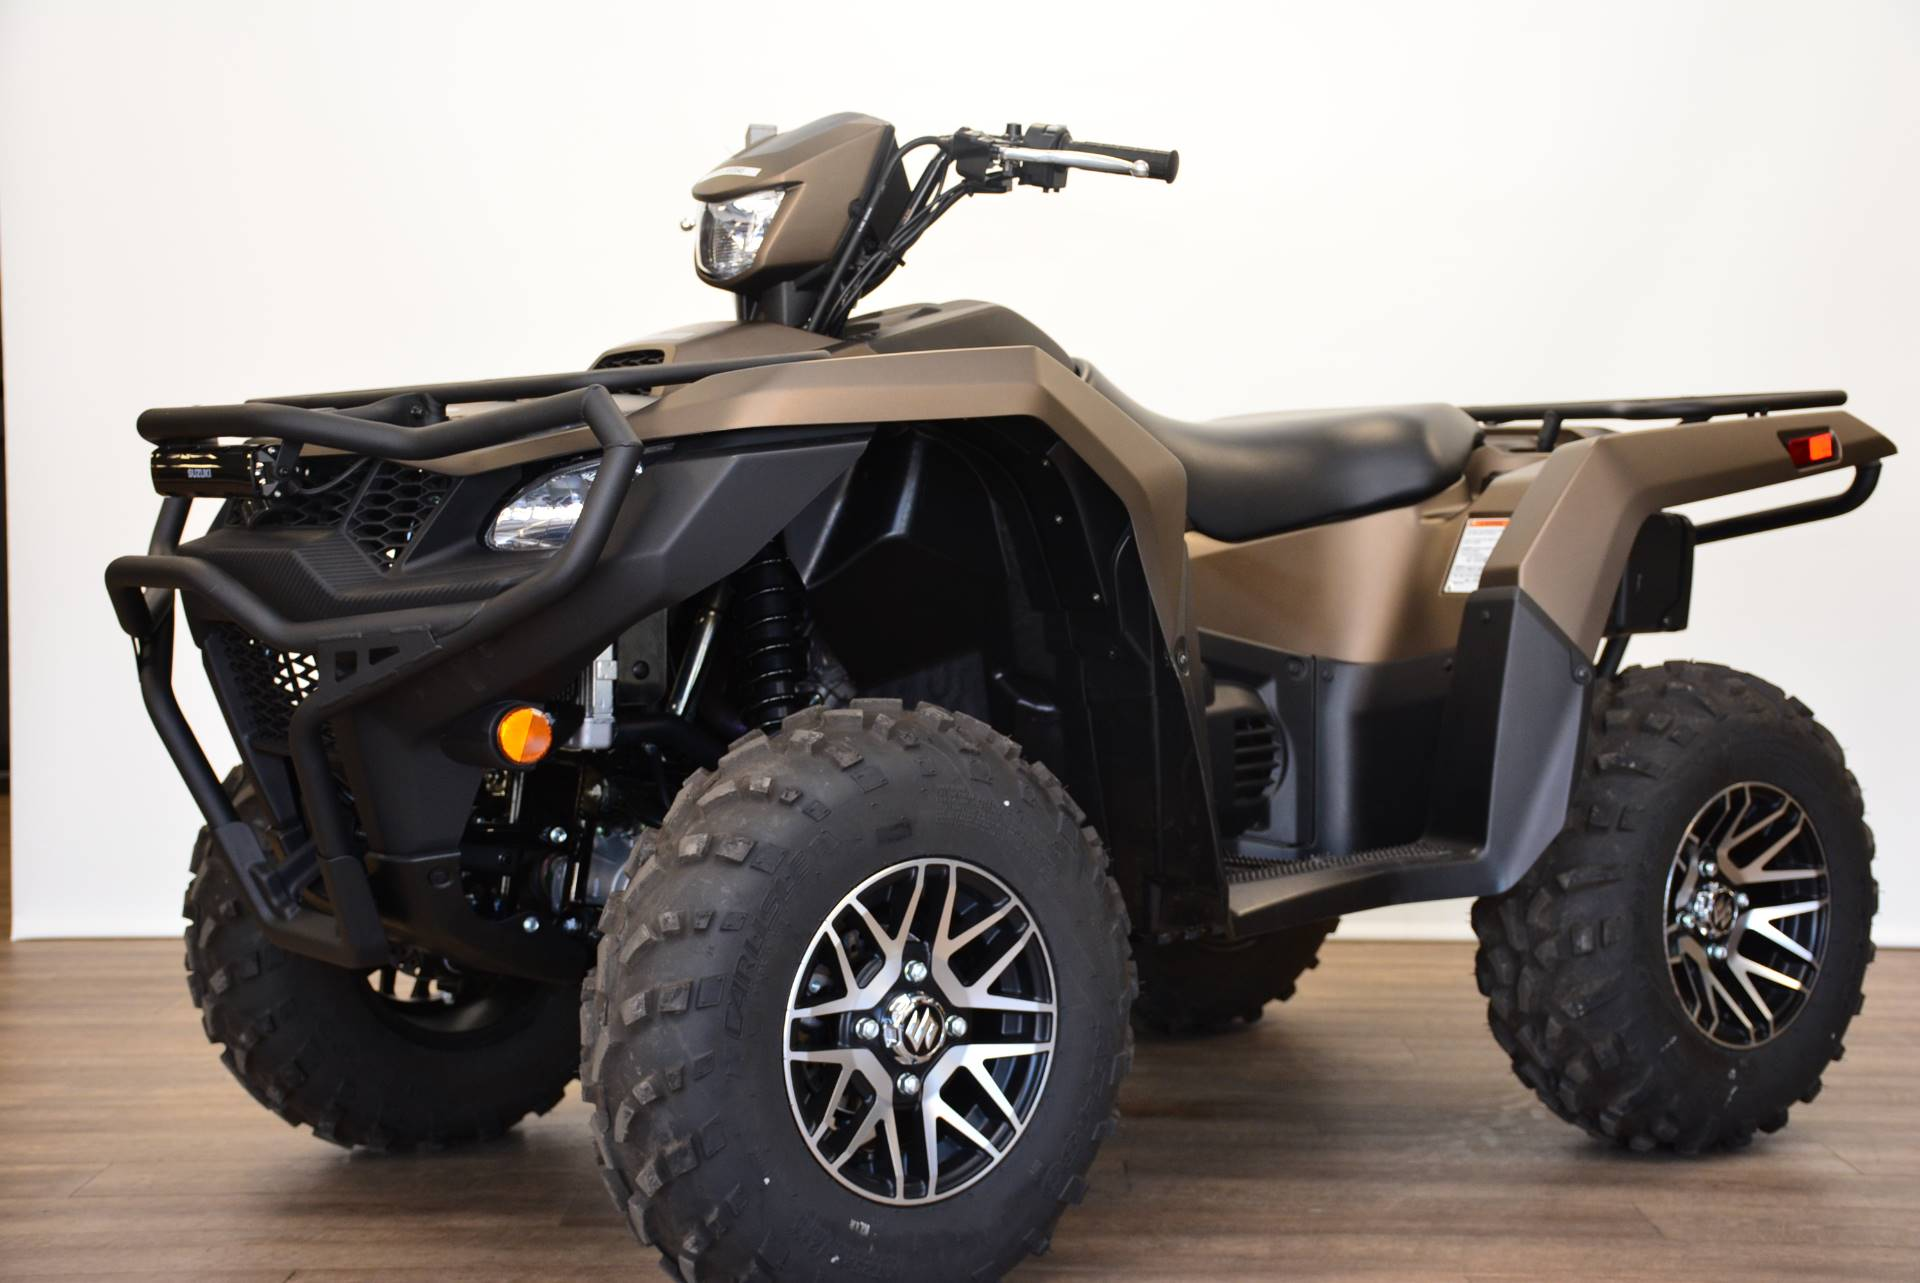 2020 Suzuki KingQuad 500AXi Power Steering SE+ in Bartonsville, Pennsylvania - Photo 3